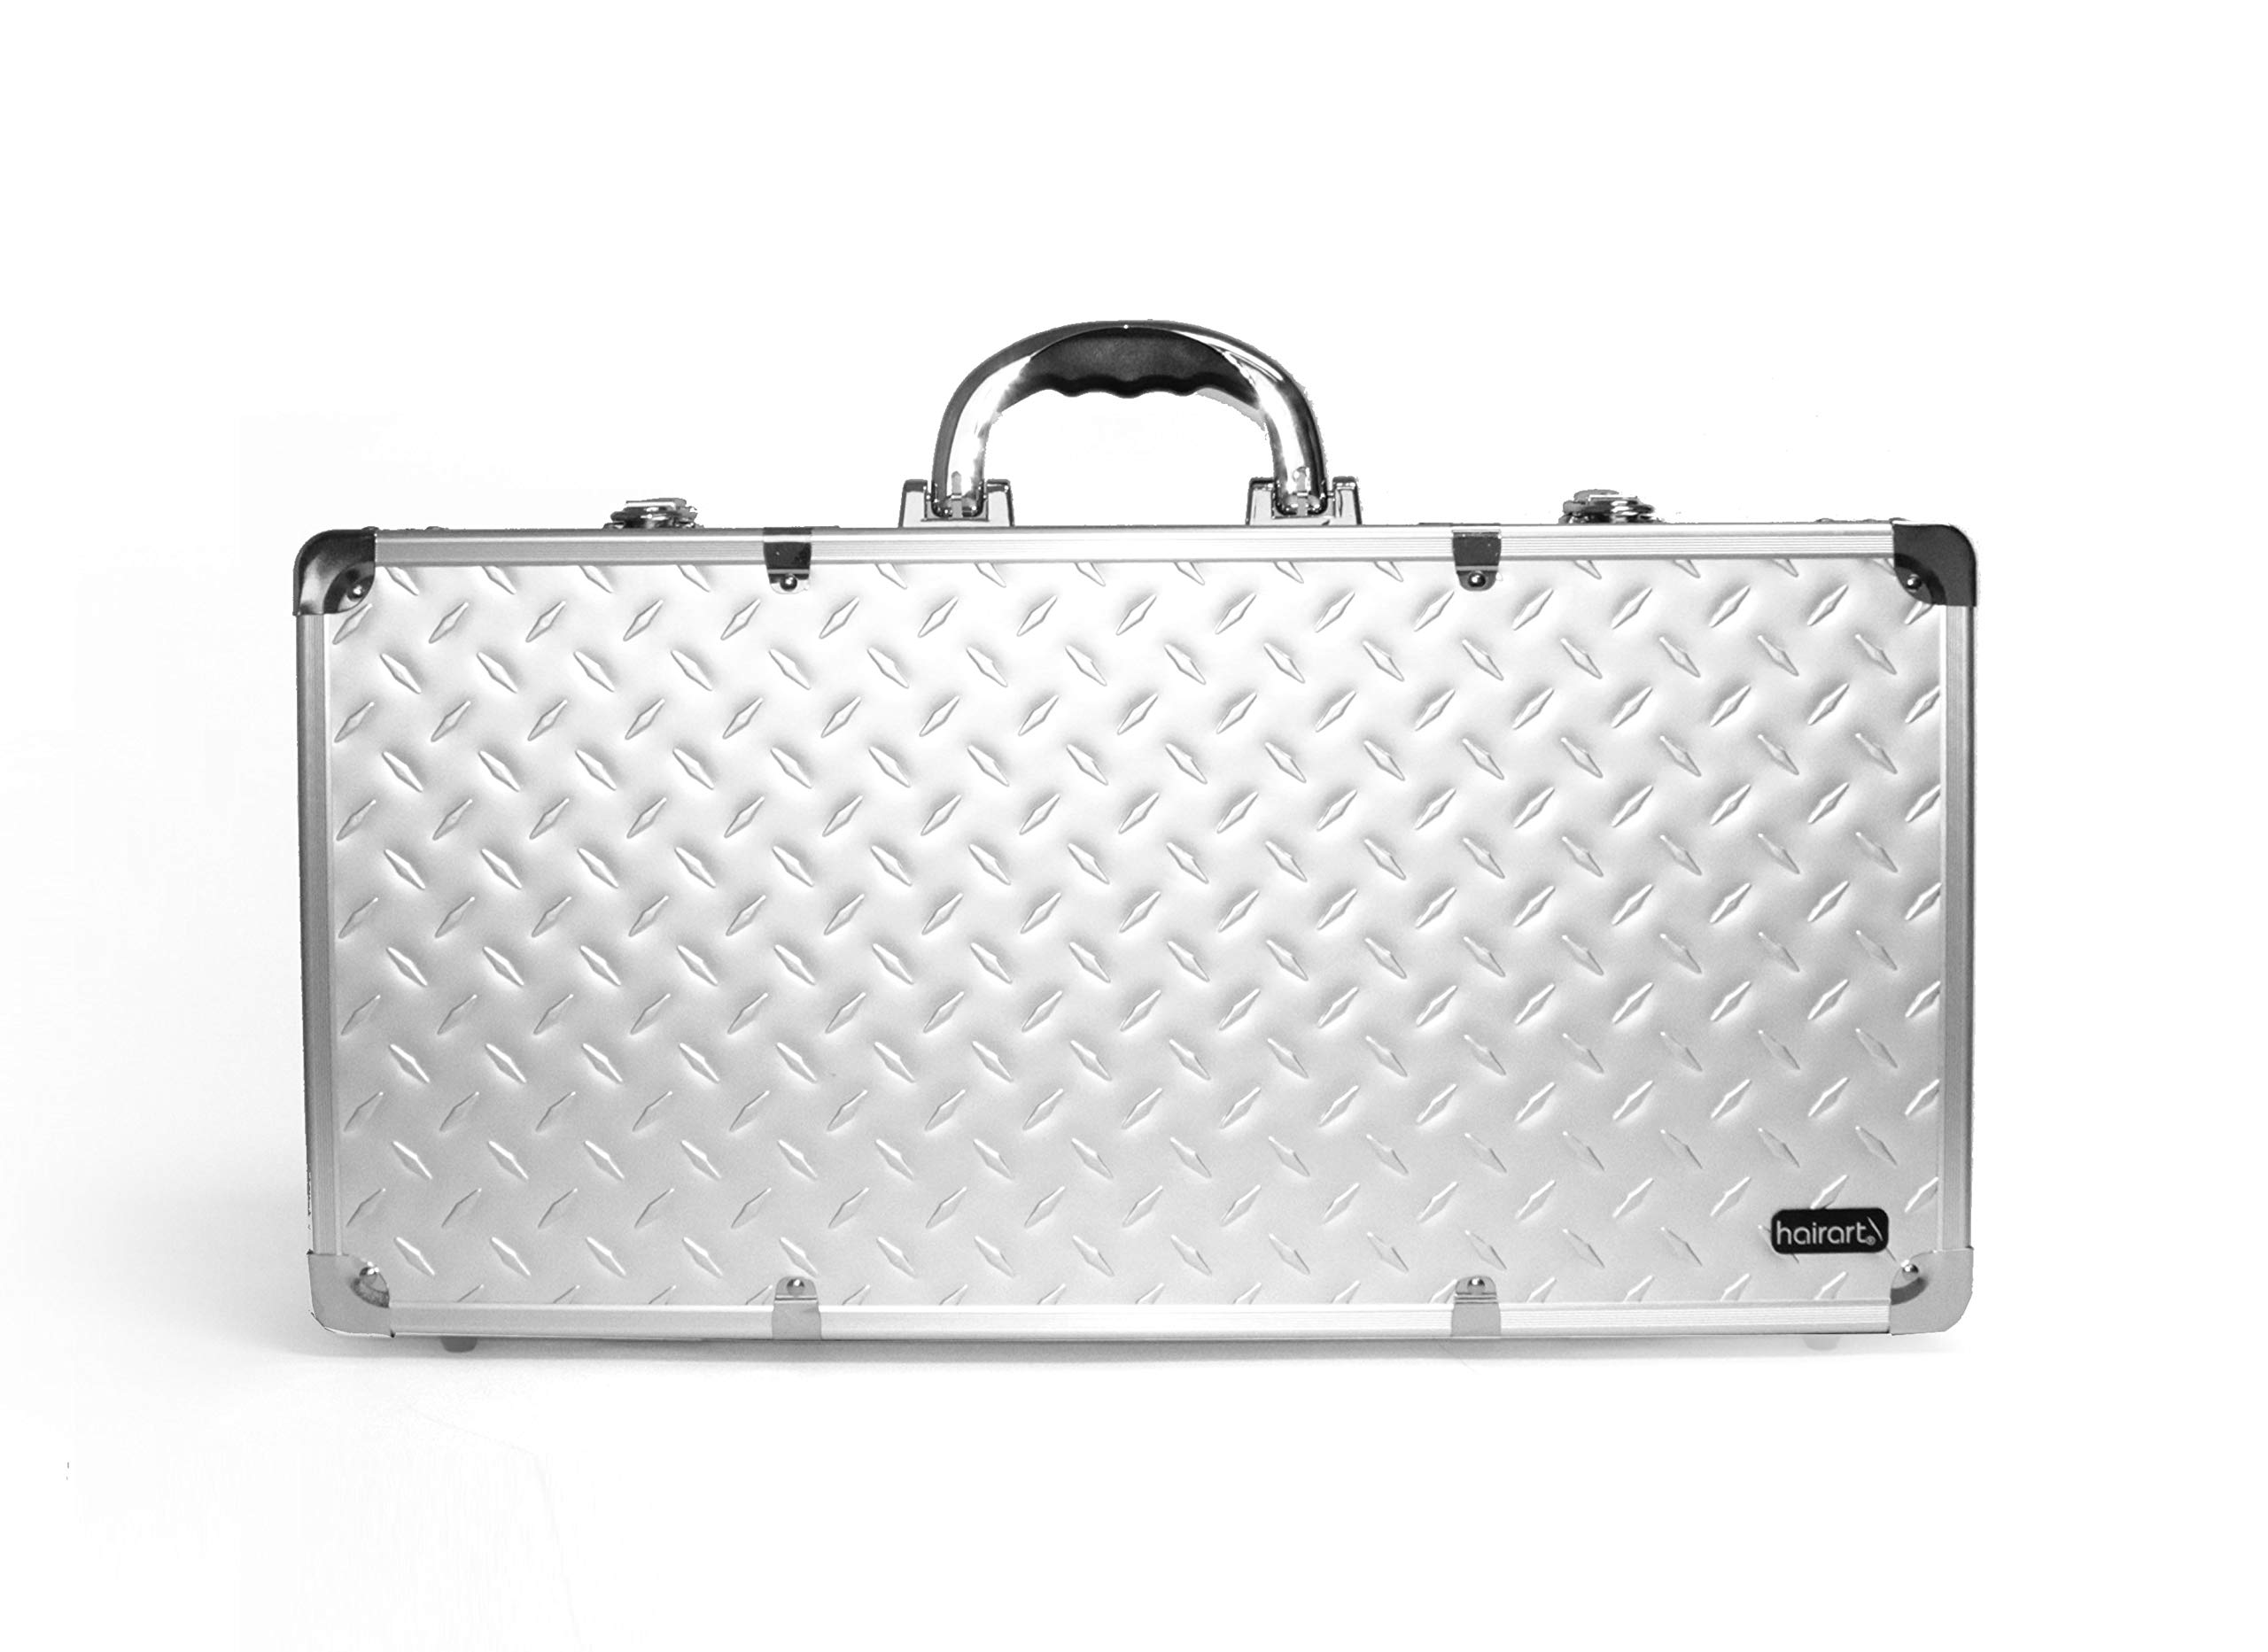 HairArt Barber Case, Barber Kit Tool Case, Tools Not Included (Silver)